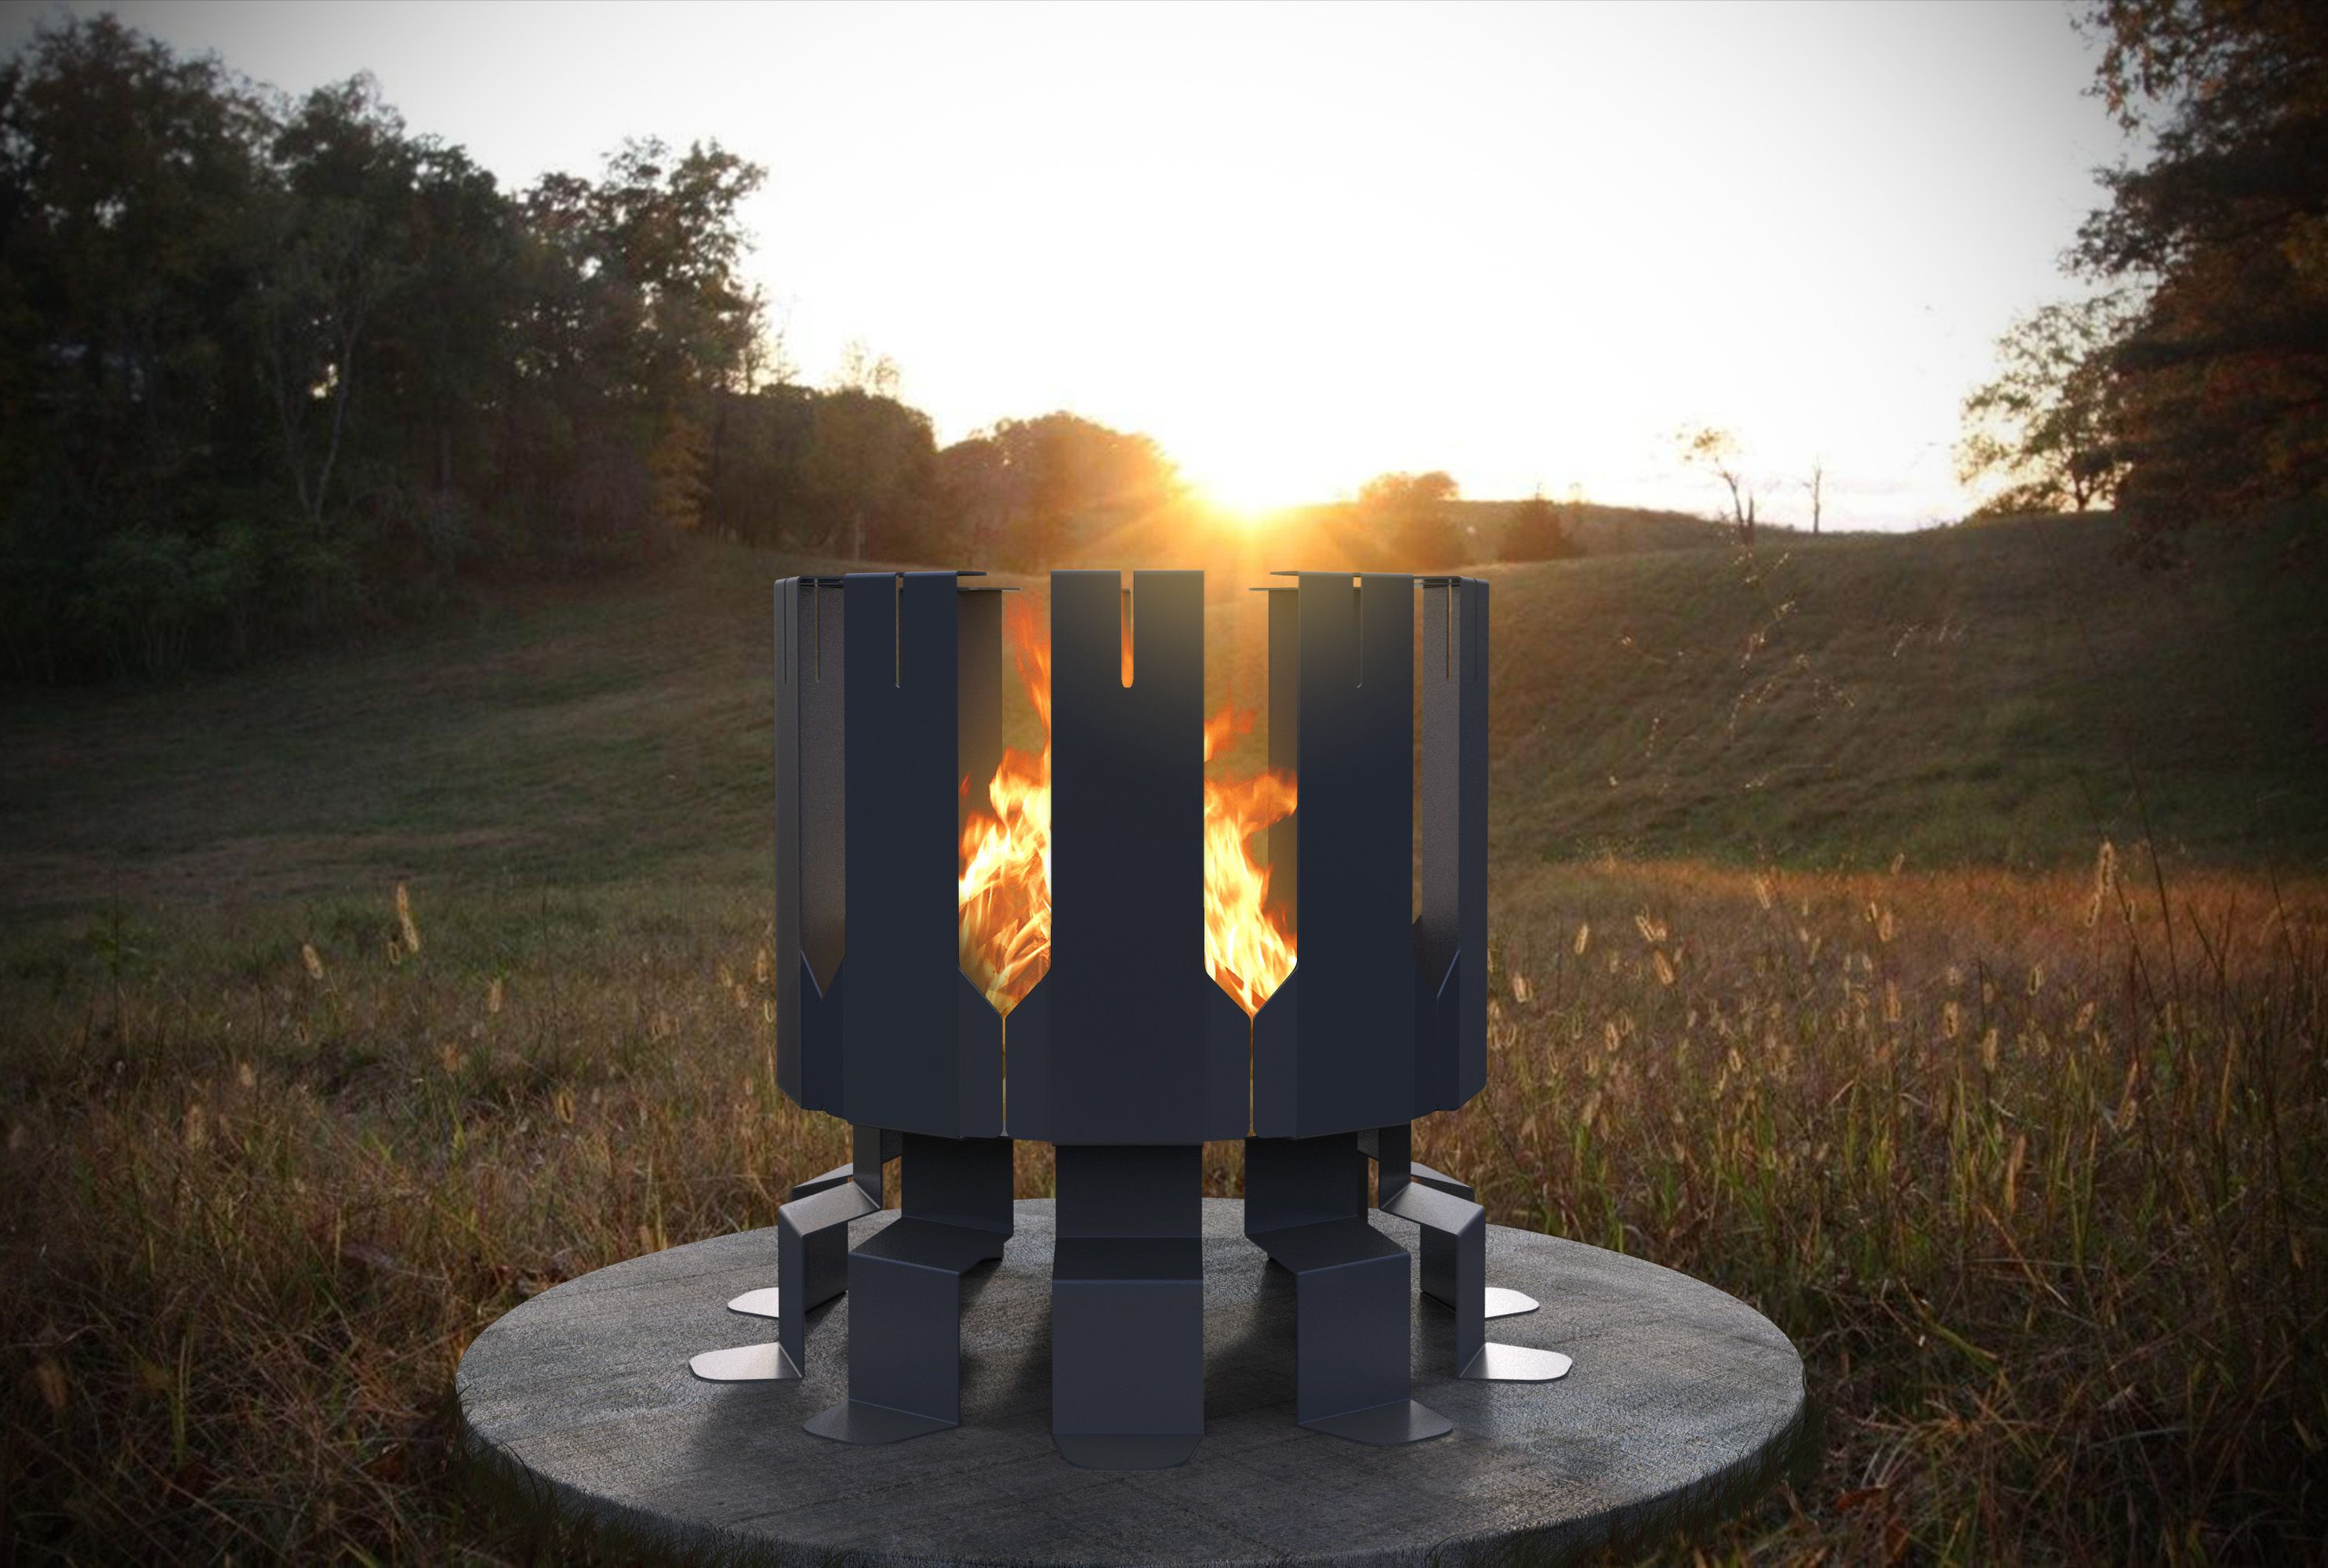 05af709bc3a7246aadbd5ba7cc602be3 Top Result 50 Awesome Steel Outdoor Fireplace Gallery 2018 Hiw6